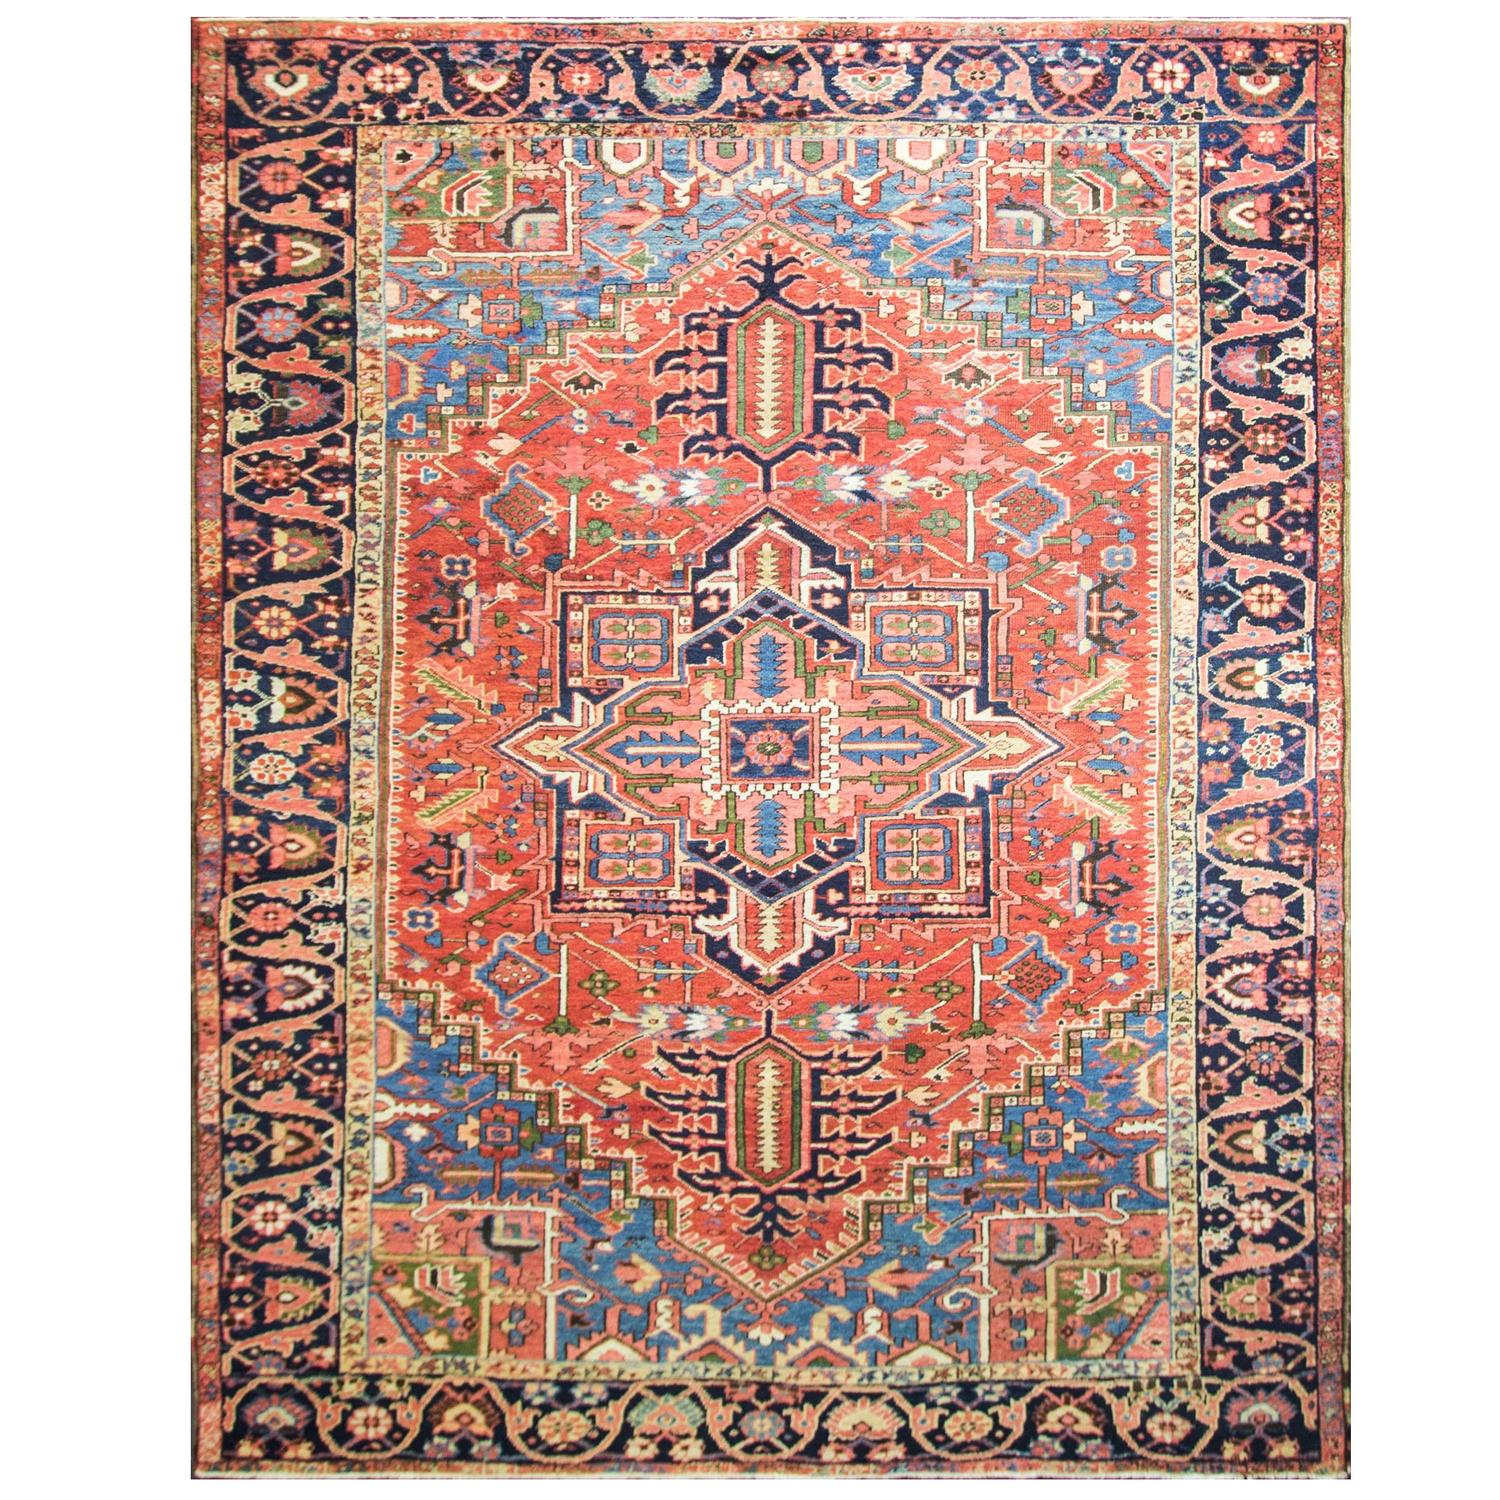 Charming Antique Persian Heriz Carpet At 1stdibs